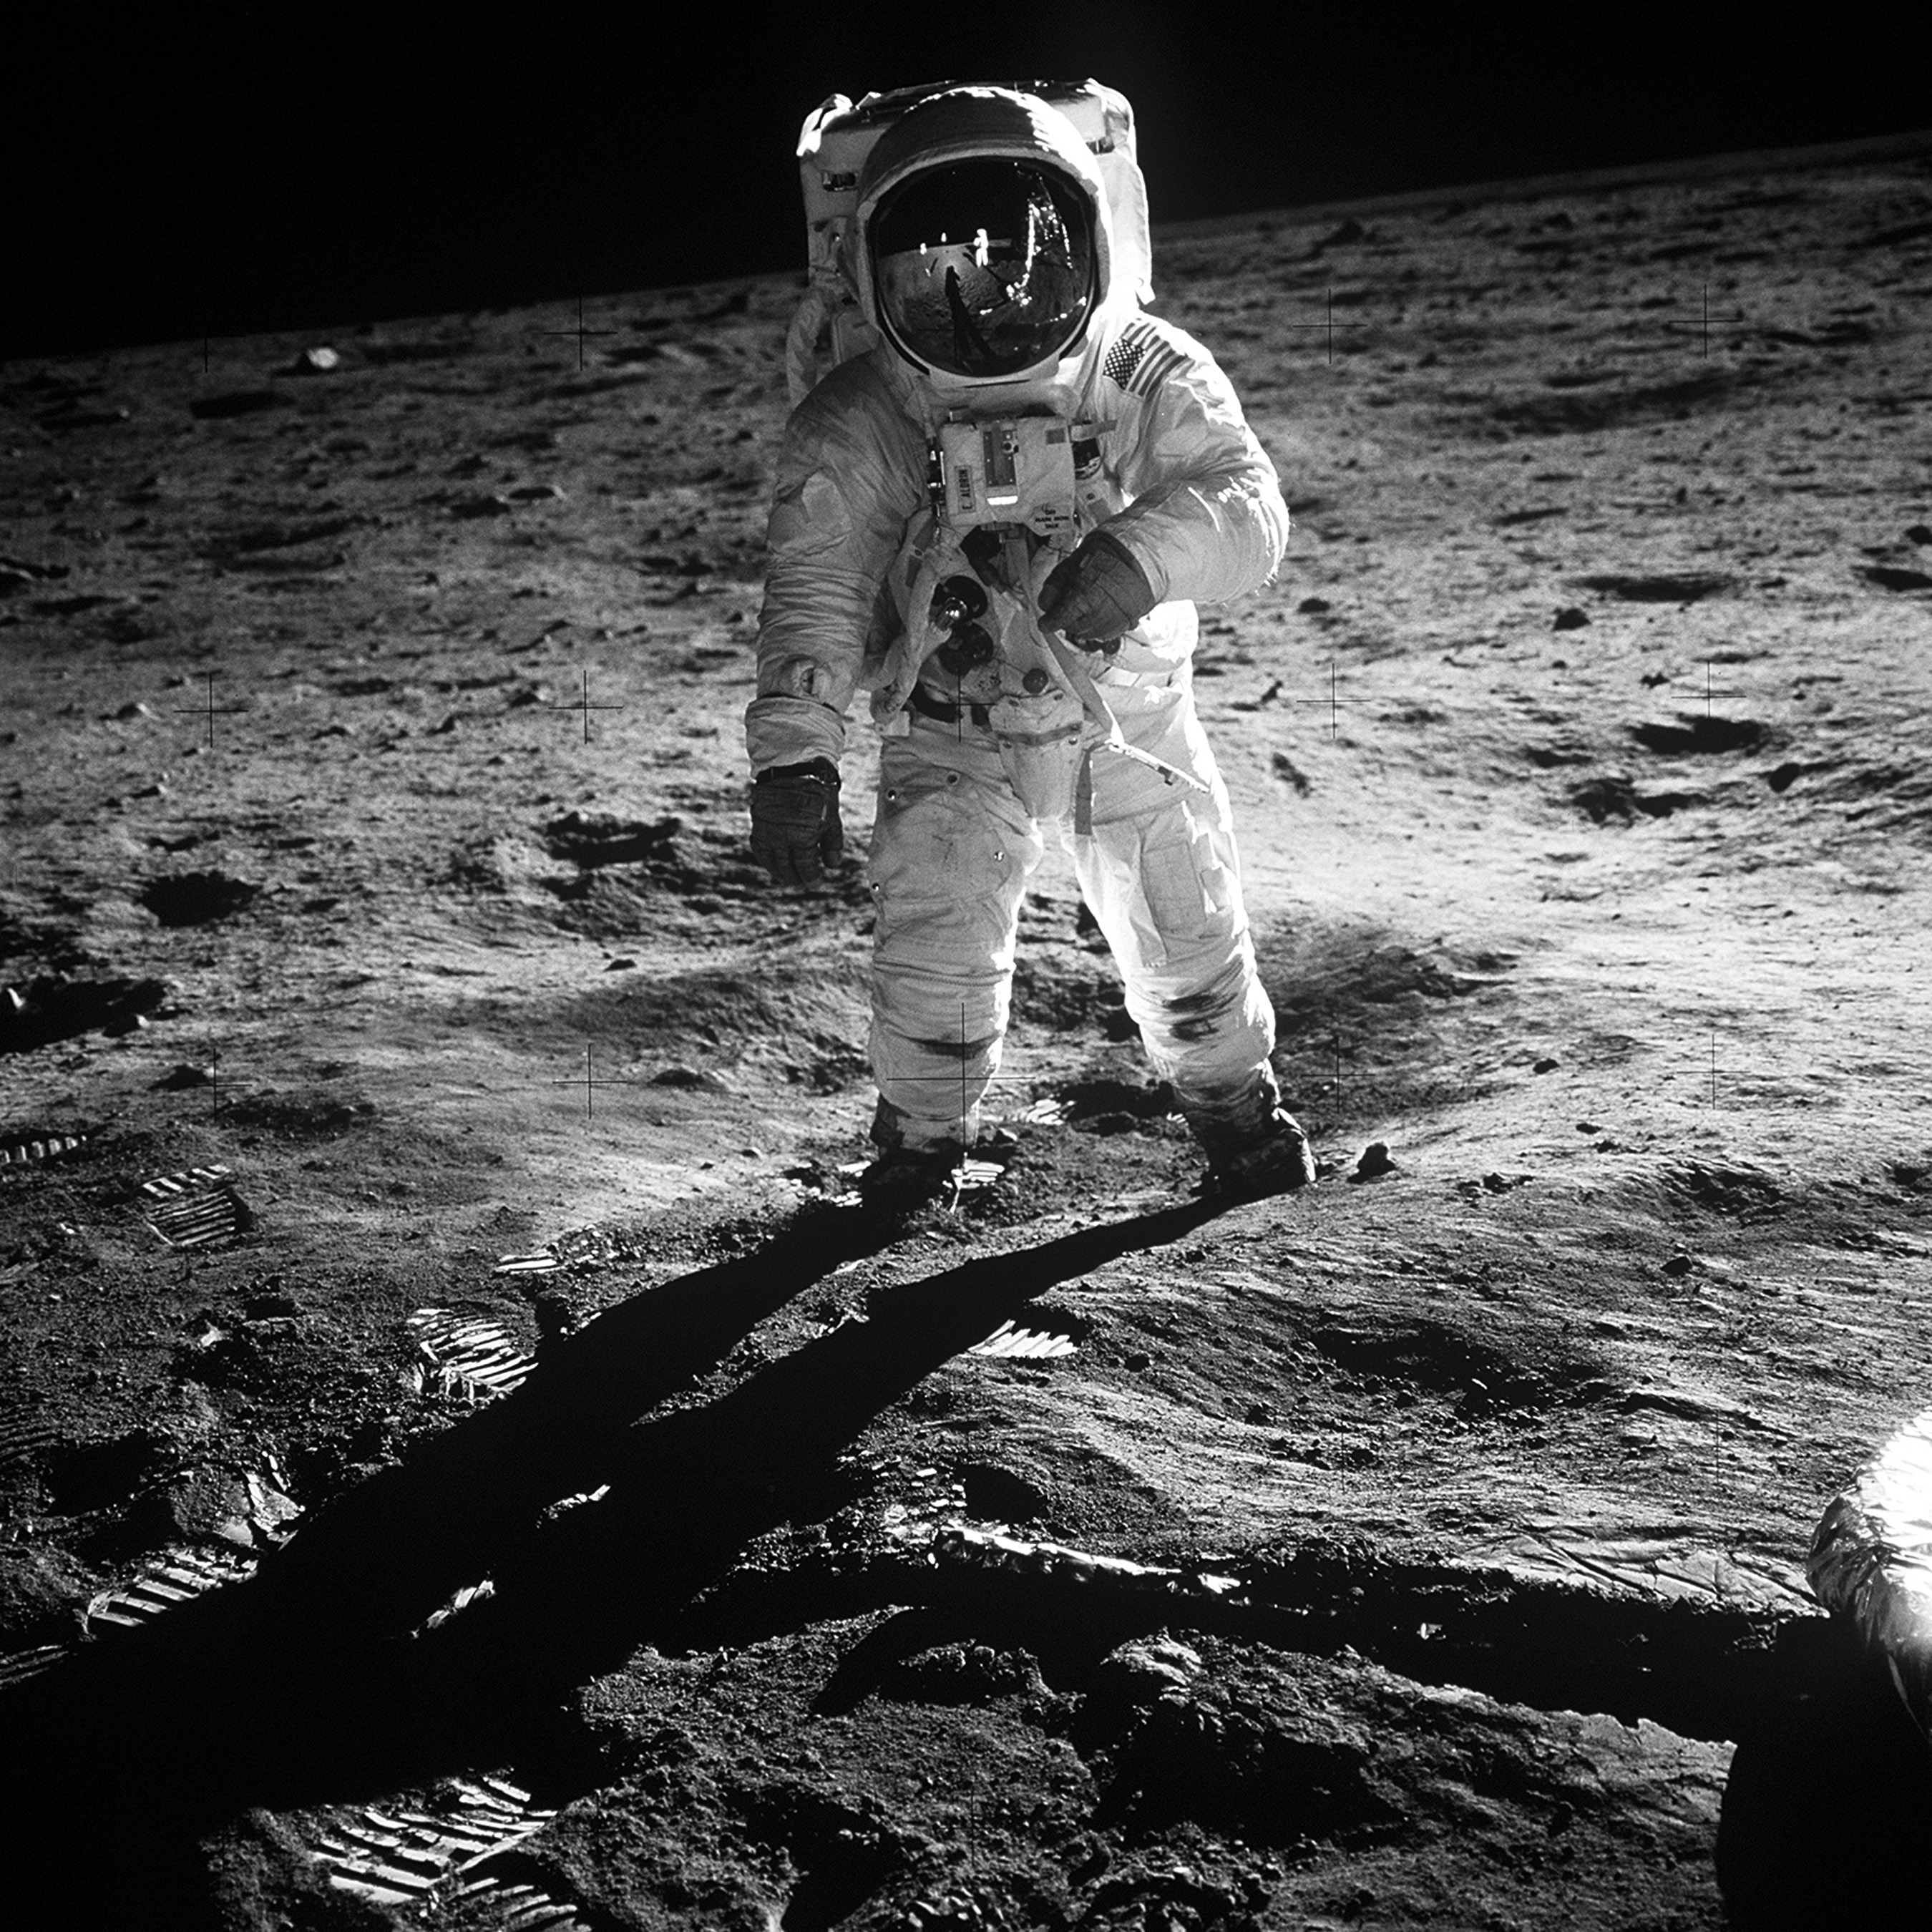 Neil Armstrong taking mankind's first ever steps on the moon.